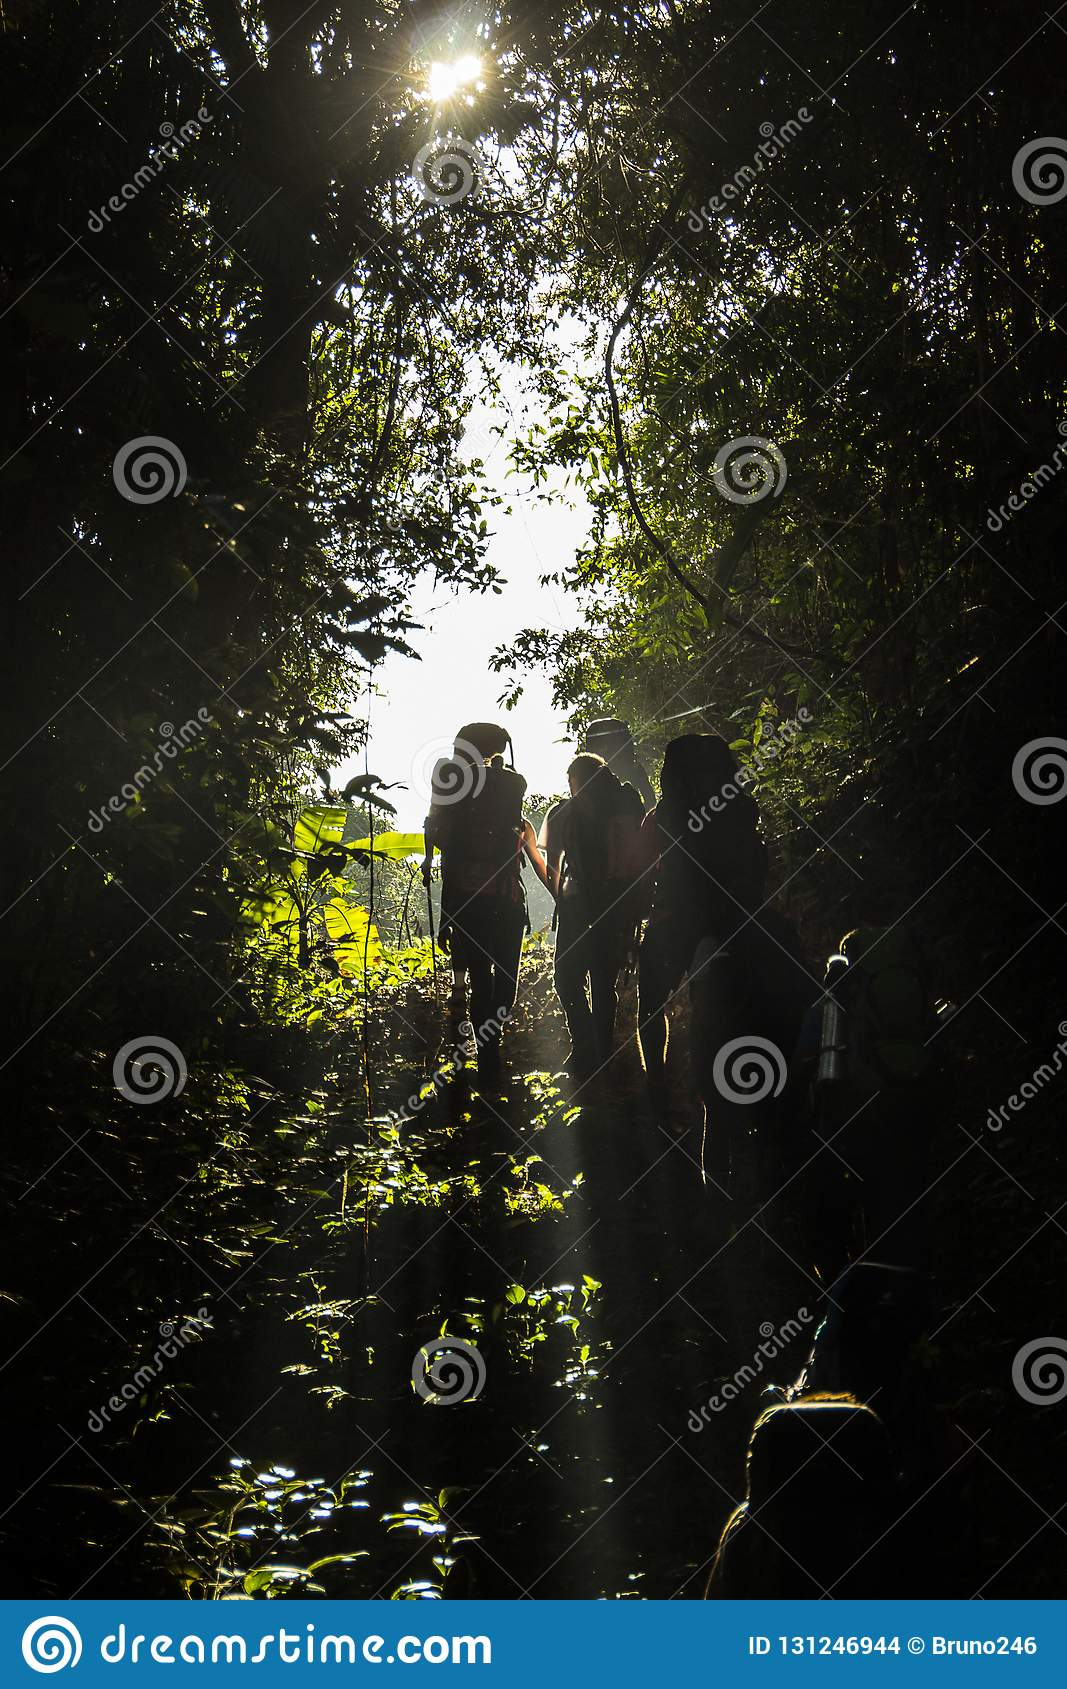 Silhouettes of people doing trail